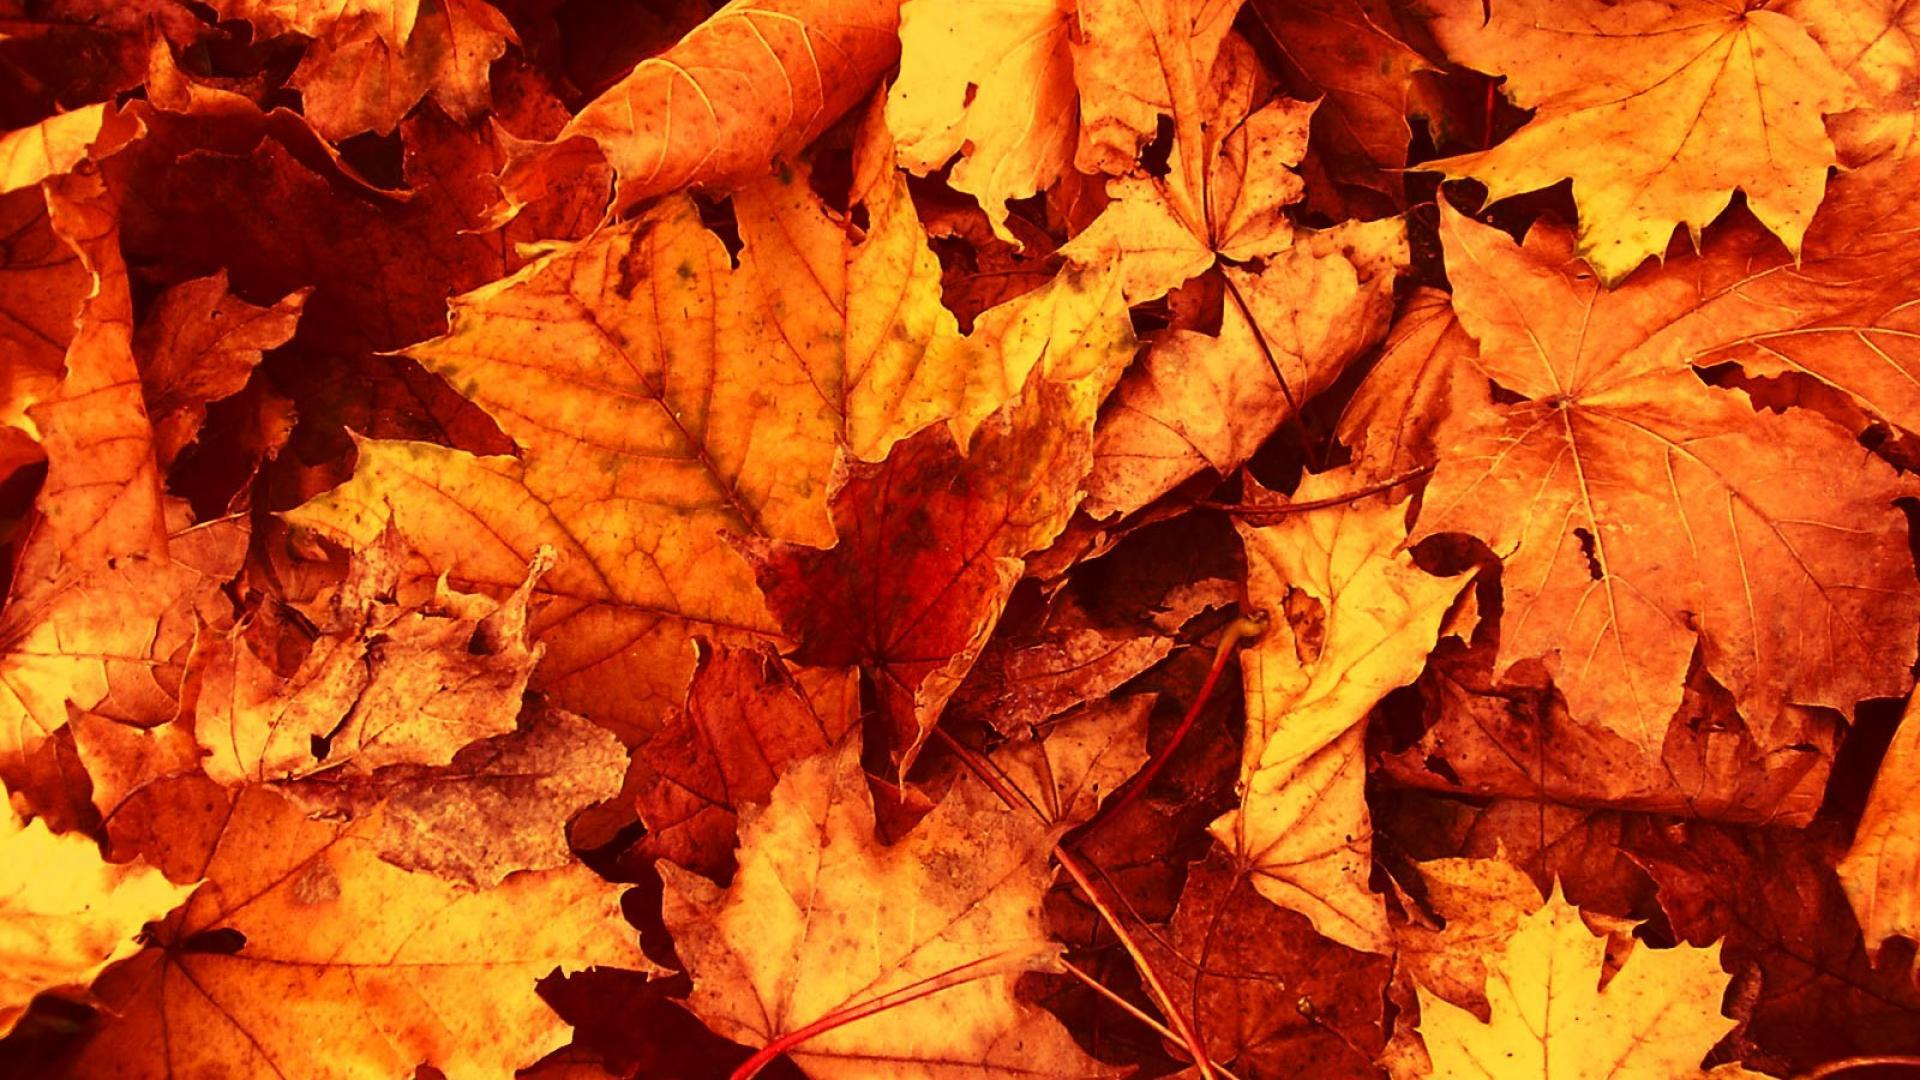 Autumn Leaves Wallpaper | HD Wallpapers Pulse